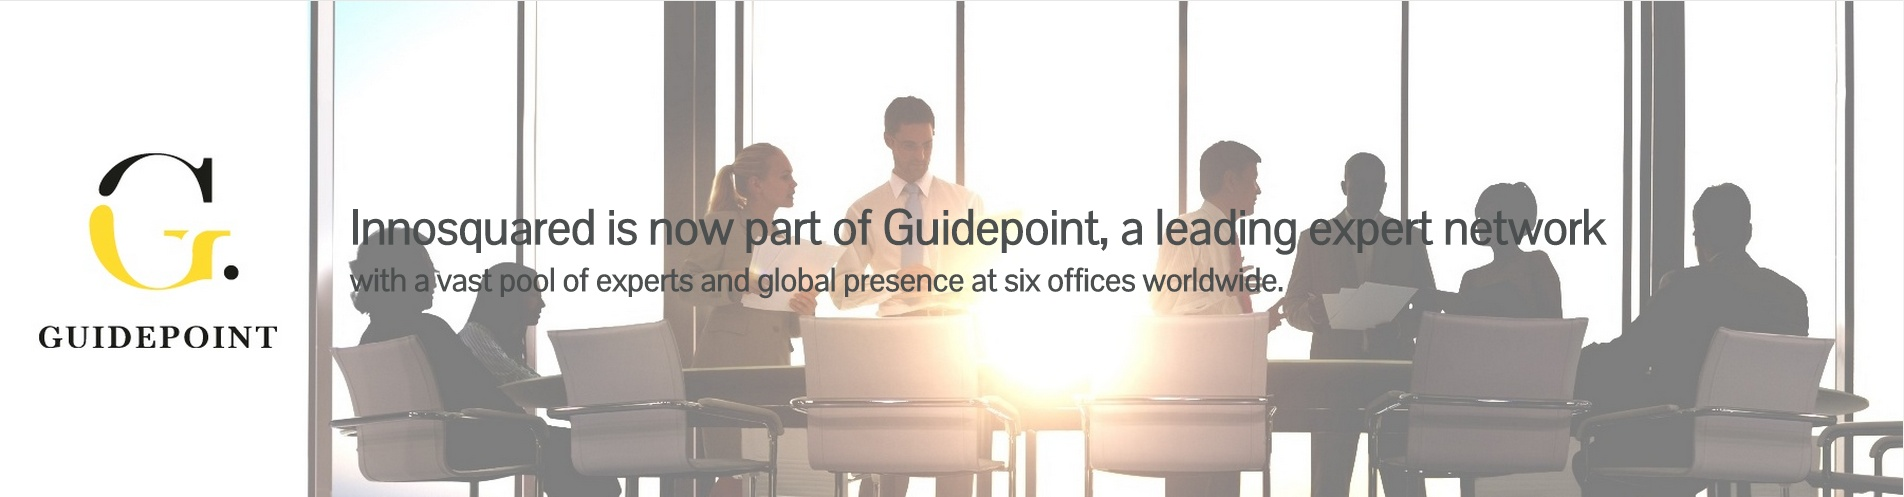 Innosquared is now part of Guidepoint, a leading expert network with a vast pool of experts and global presence at six offices worldwide.